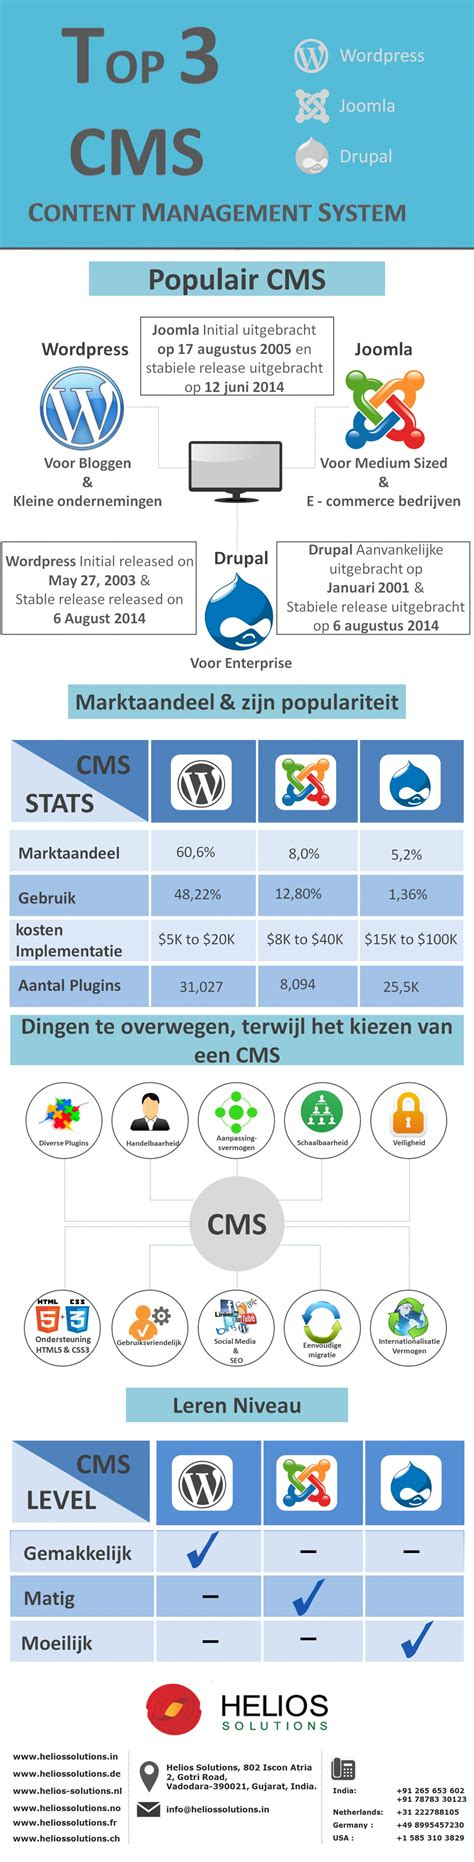 top 3 cms content management system visual ly